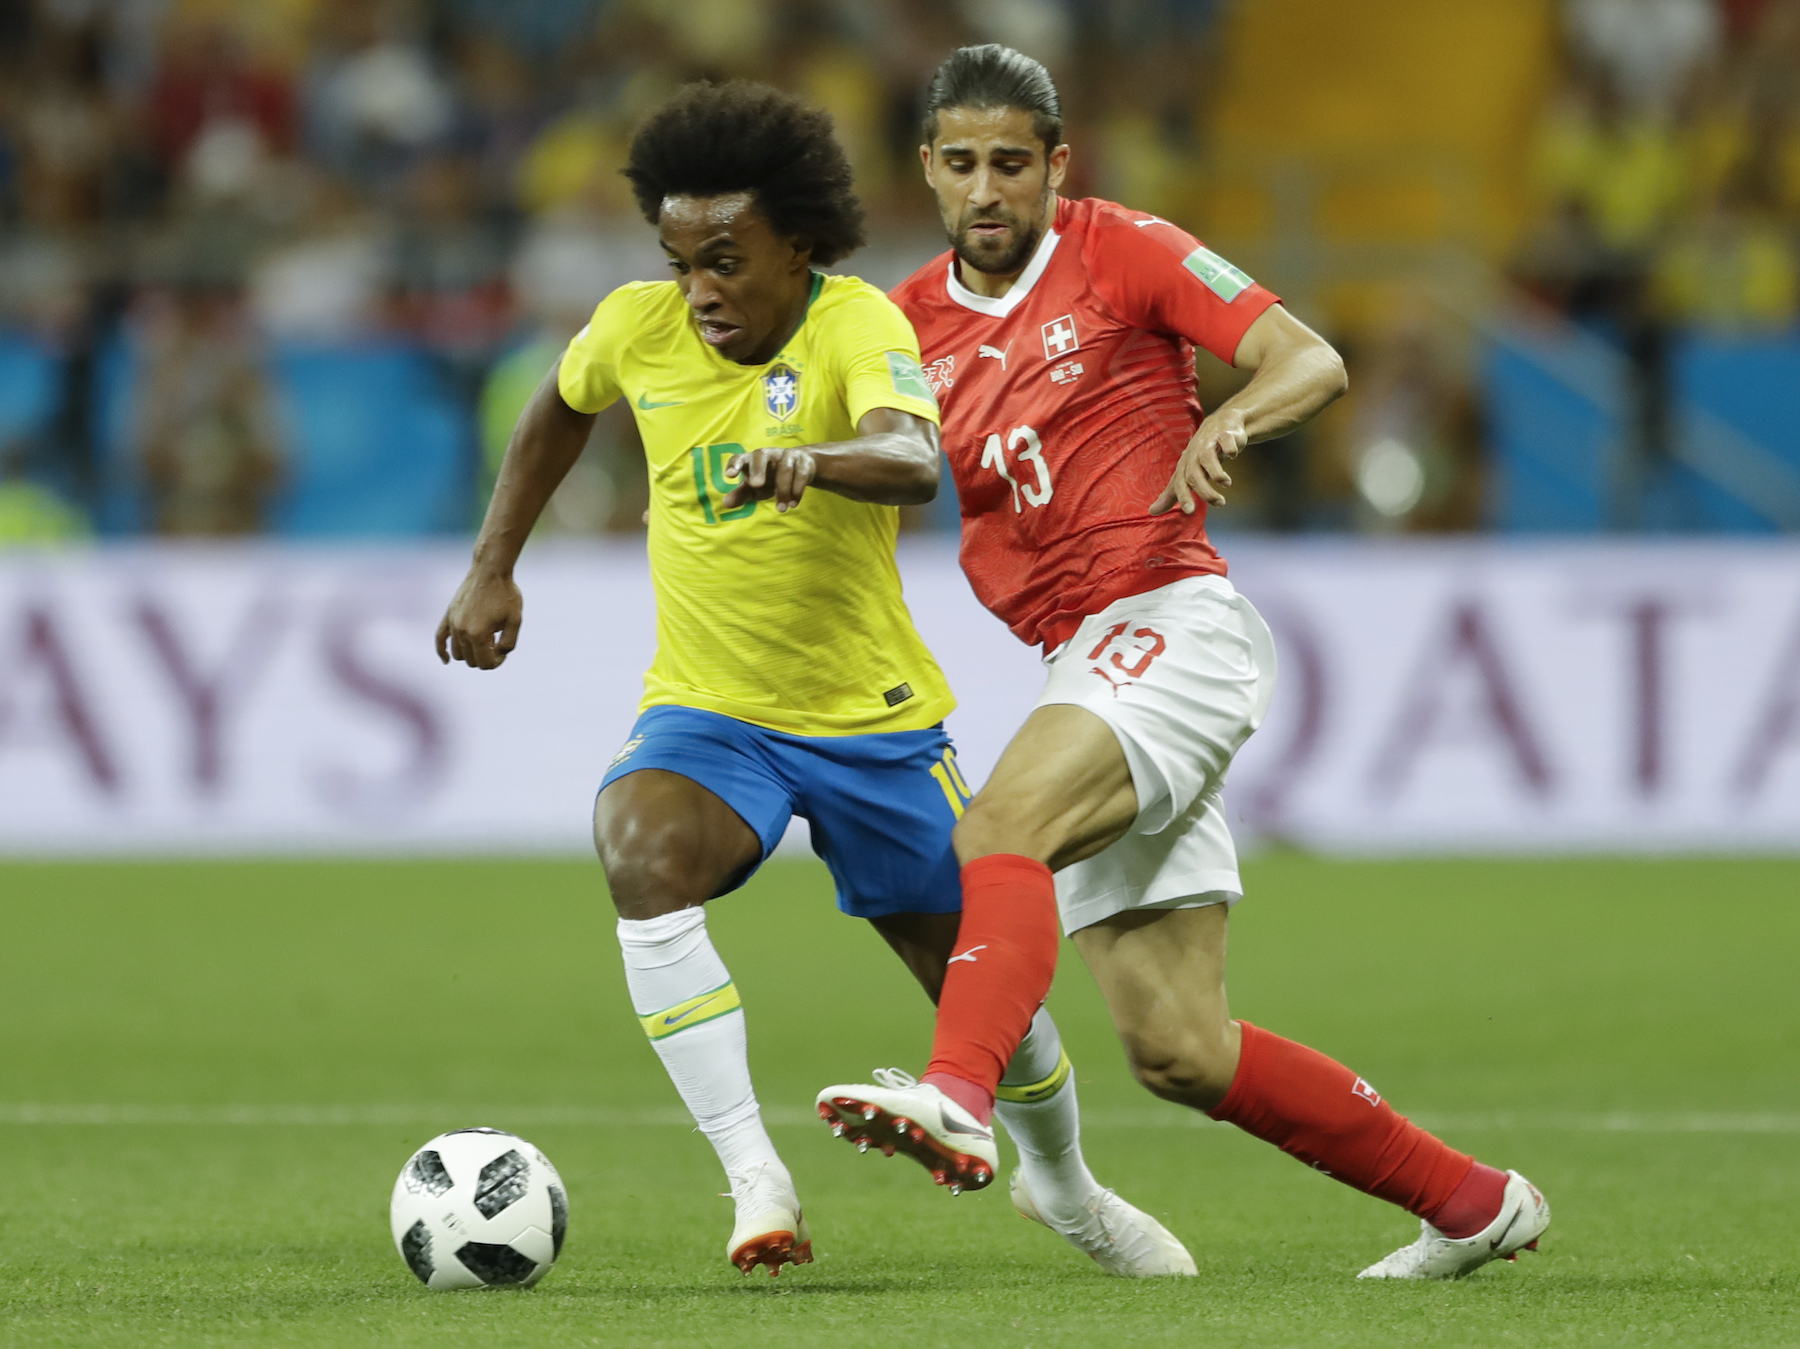 <div class='meta'><div class='origin-logo' data-origin='AP'></div><span class='caption-text' data-credit='AP Photo/Andre Penner'>Brazil's Paulinho, left, is challenged by Switzerland's Ricardo Rodriguez during their group E match at the 2018 soccer World Cup in the Rostov Arena in Rostov-on-Don, Russia.</span></div>